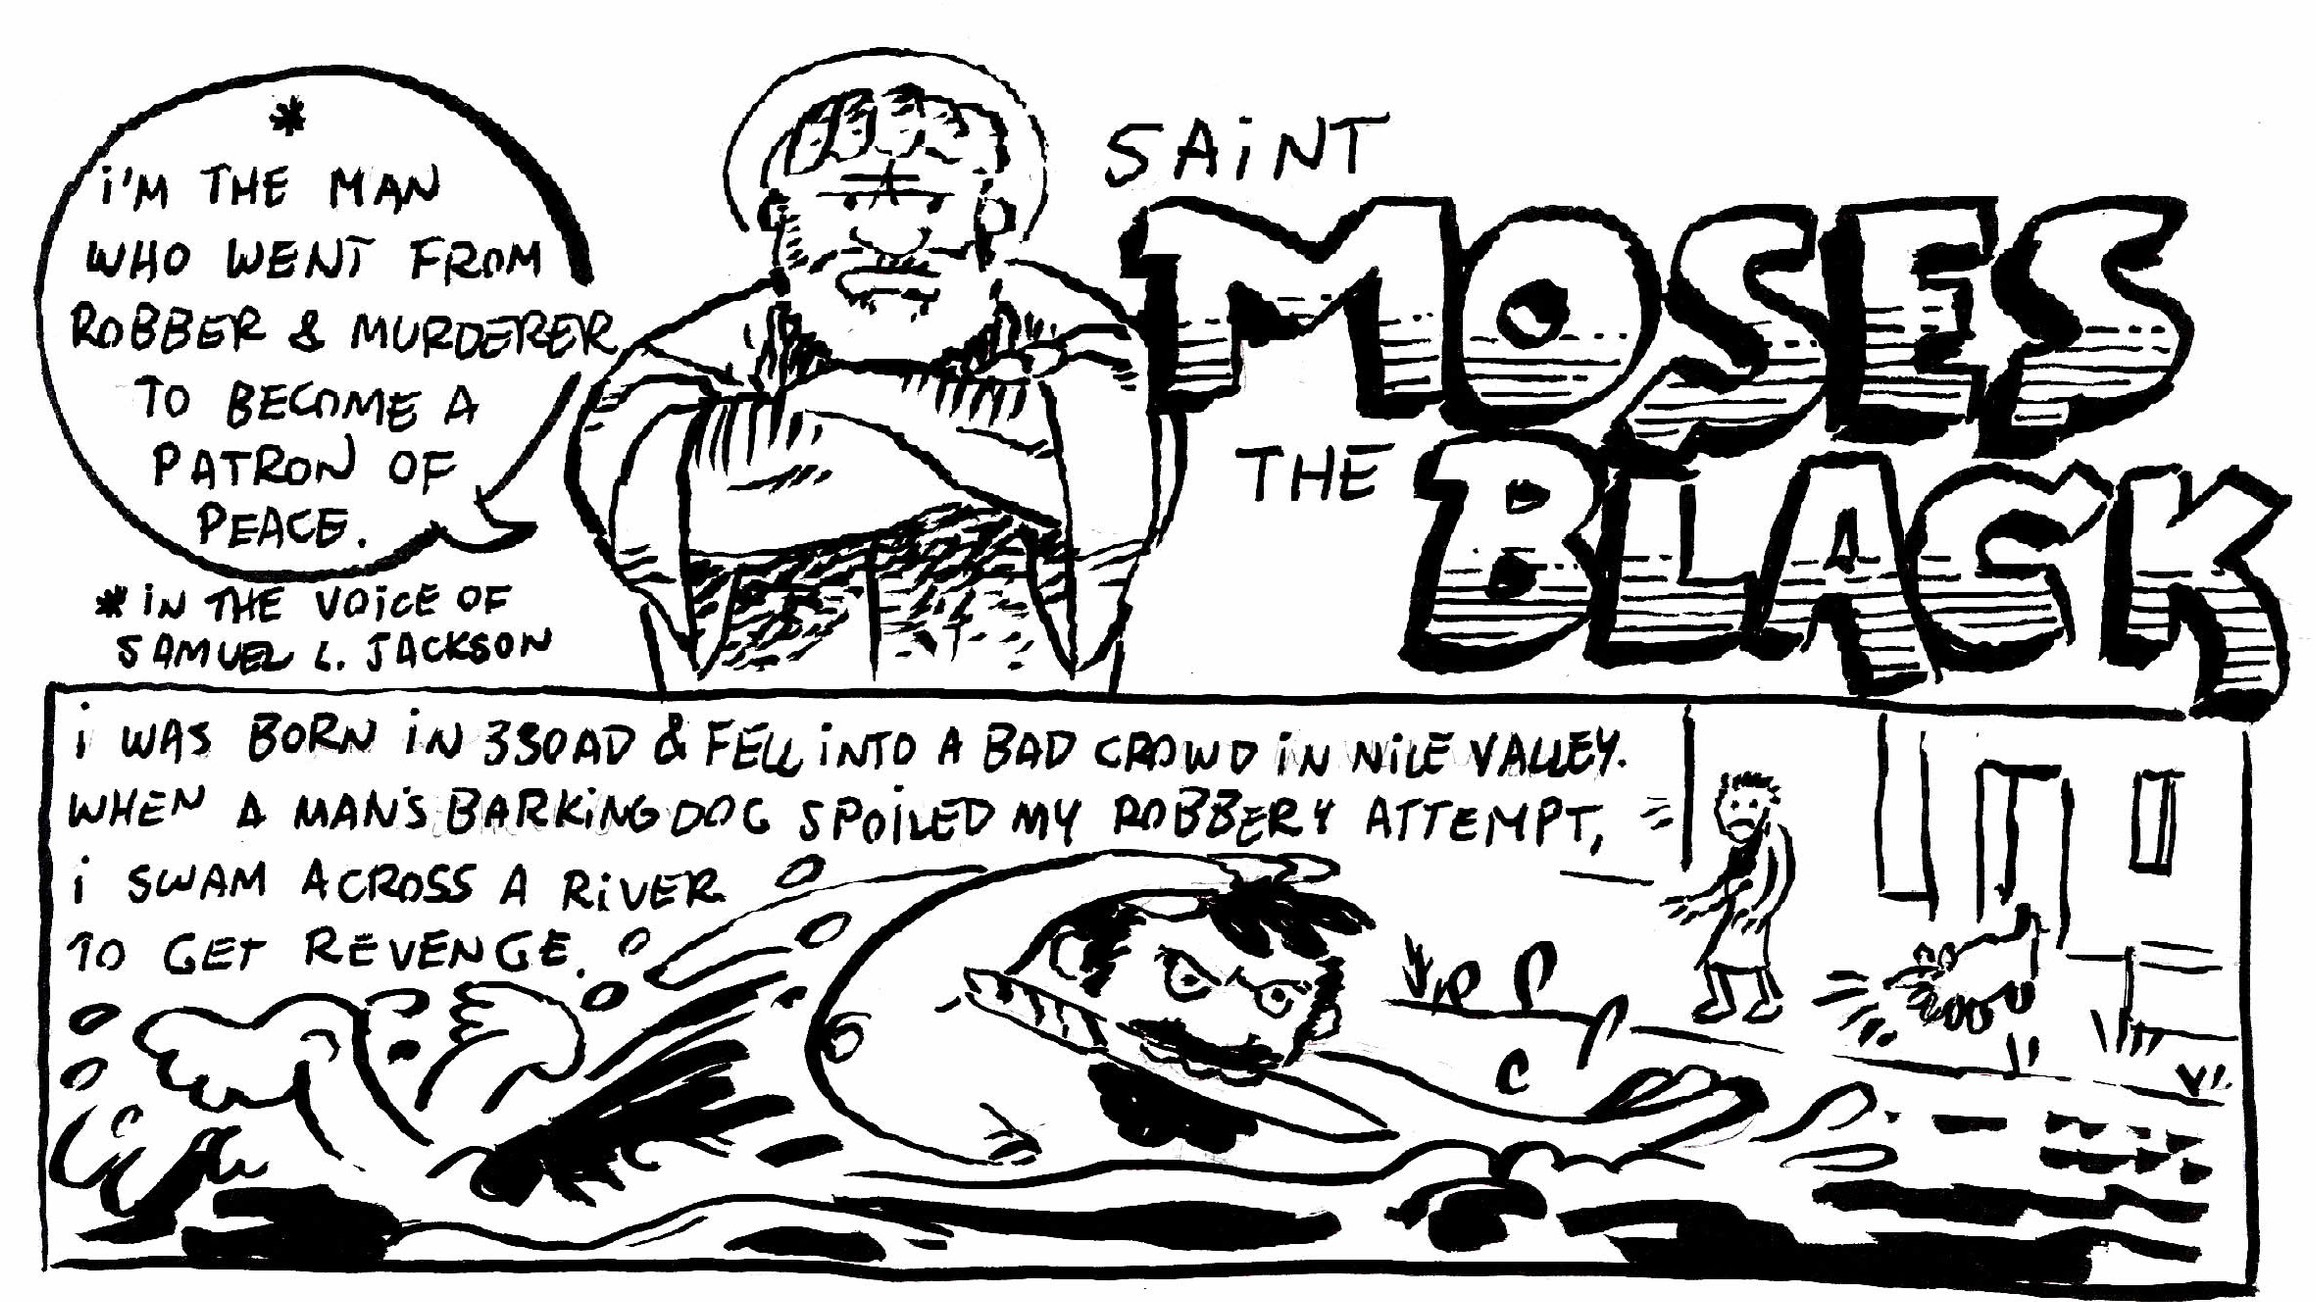 I had a great time drawing Moses Black, and went more tongue-and-cheek that the others. Hopefully nobody will be offended, but his over-the-top conversion story almost demanded it!